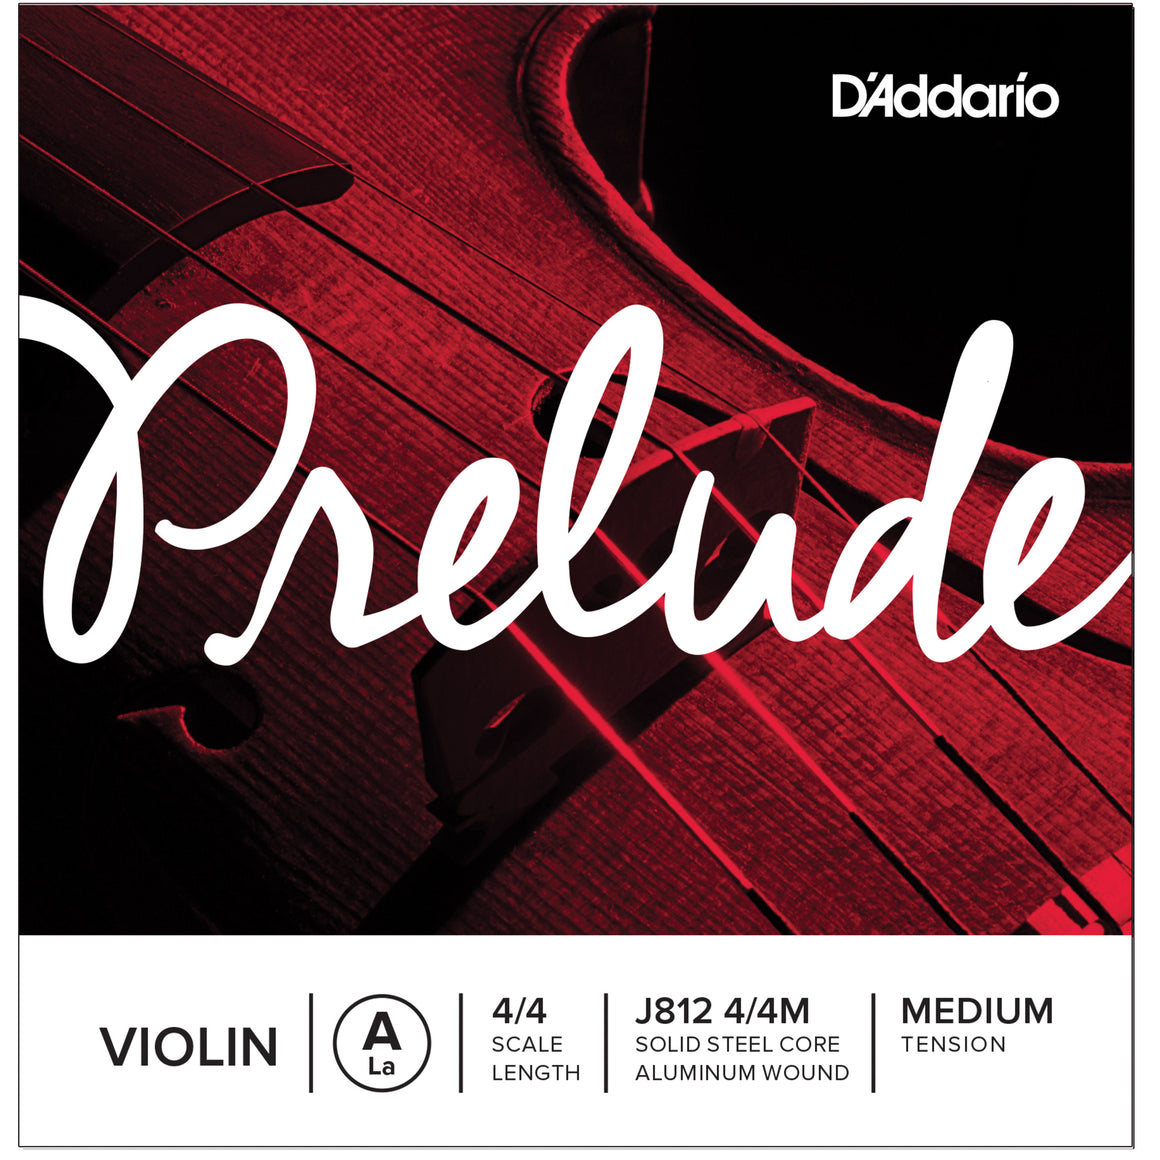 D'Addario Prelude 4/4 Full A Violin Single String Medium J812